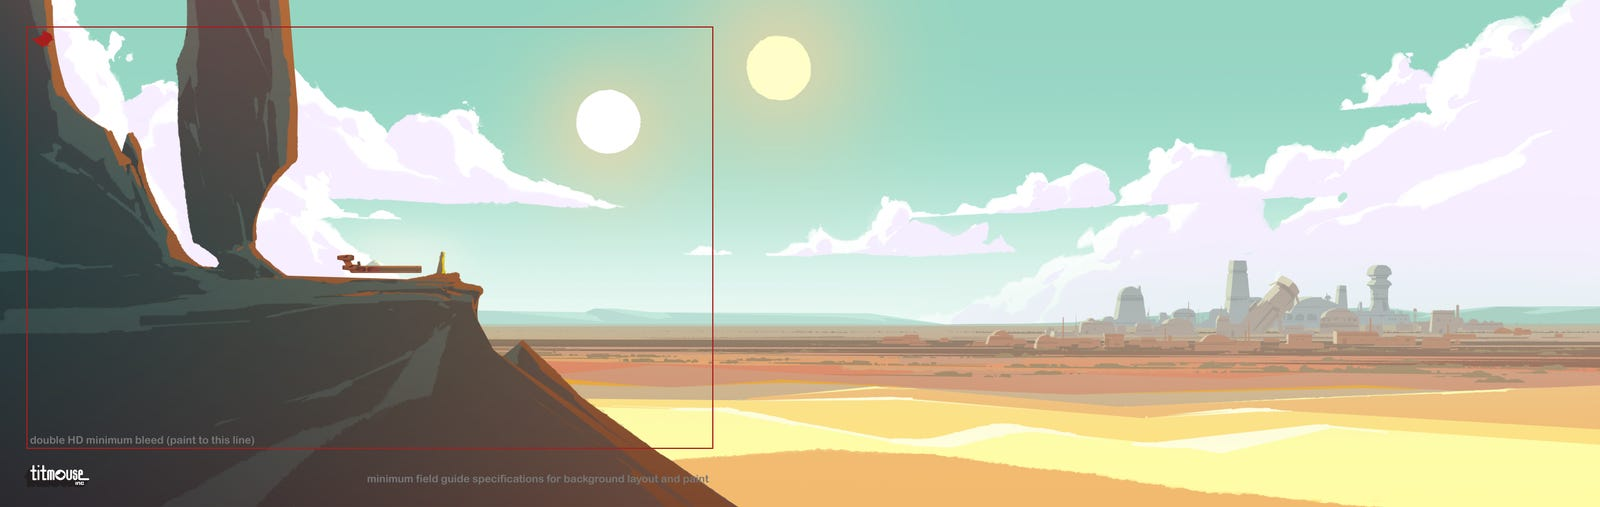 Background art from several of the Galaxy of Adventures animated shorts released so far.